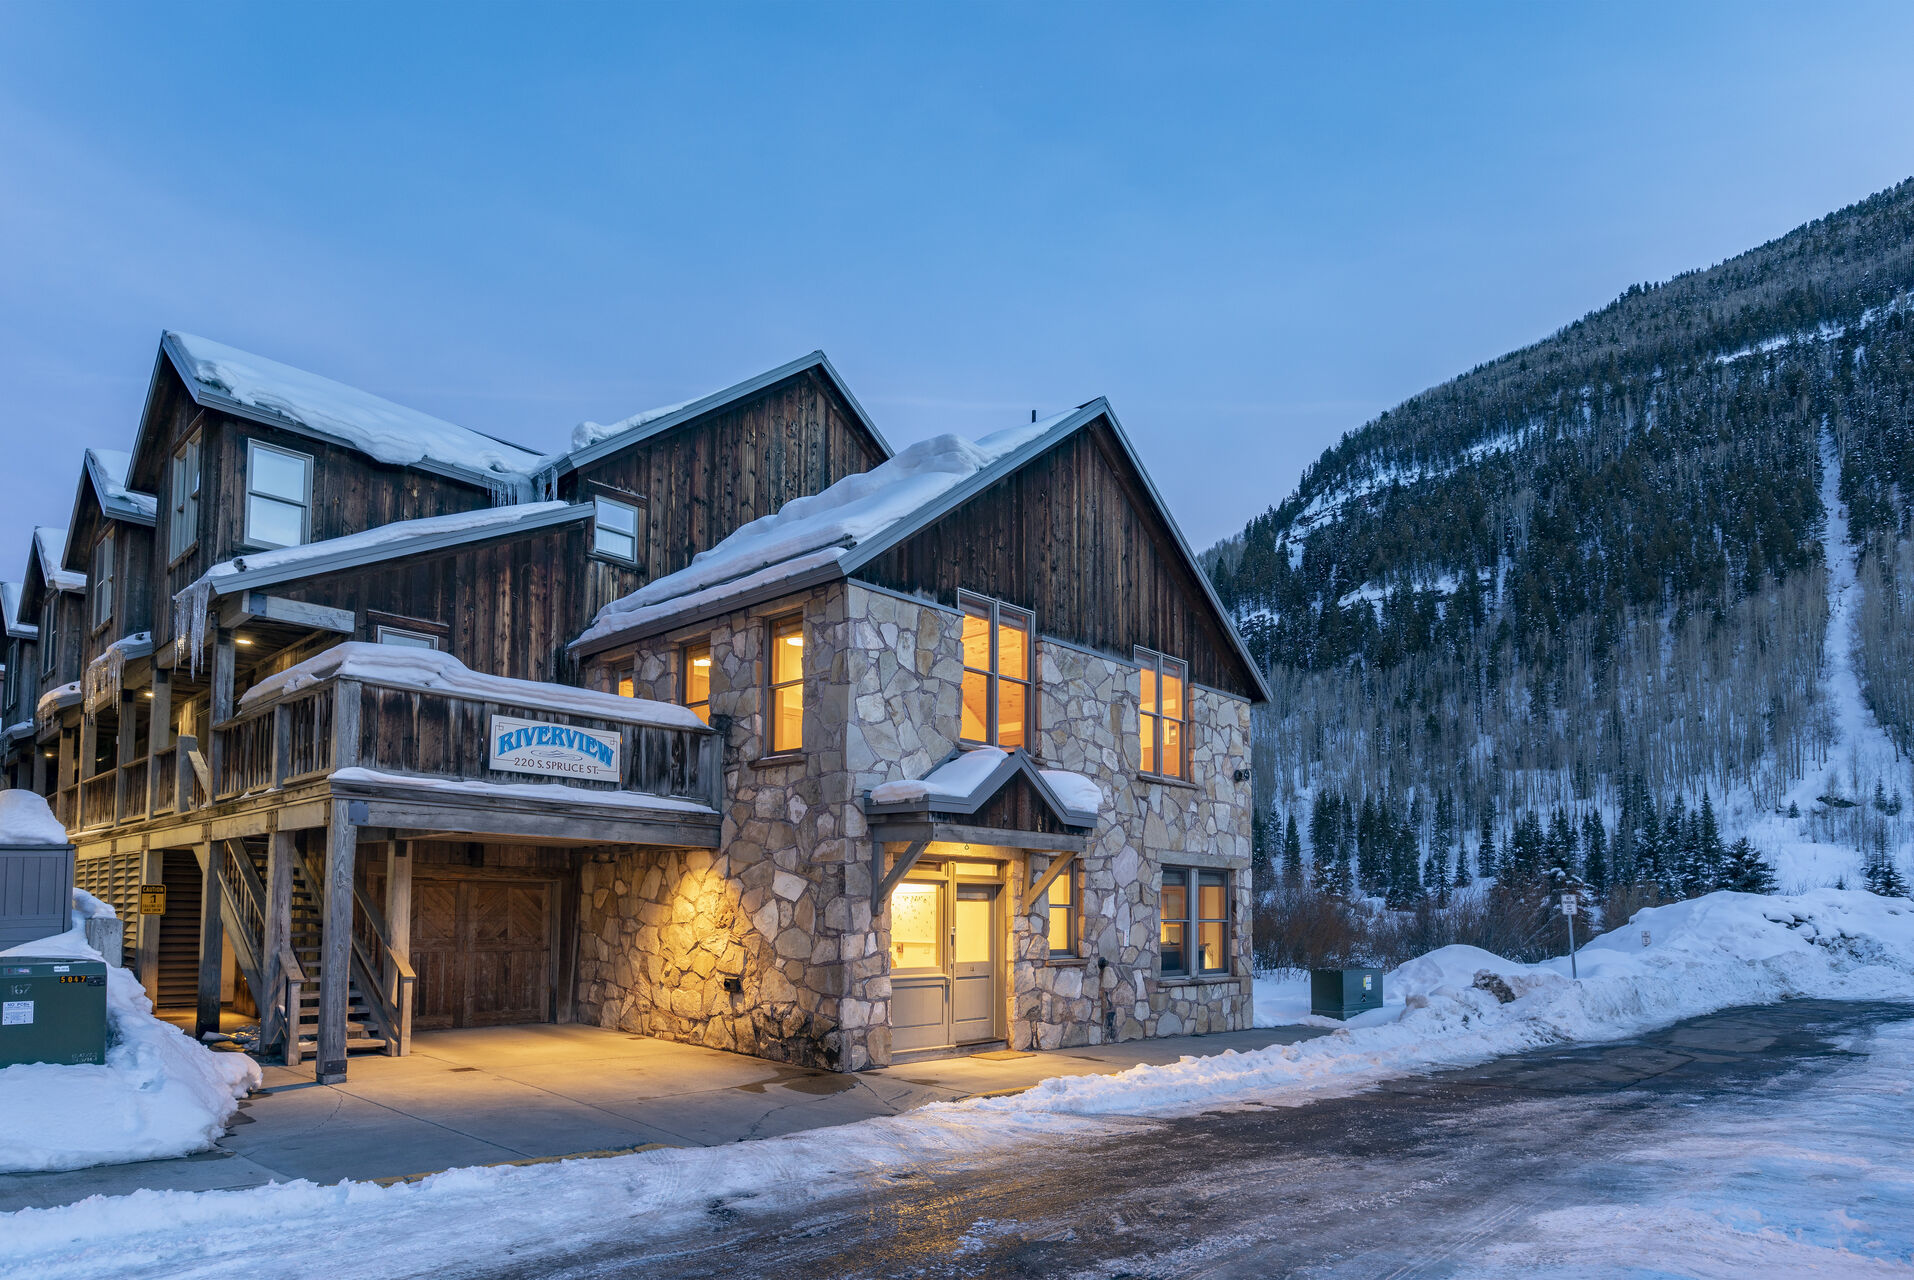 Internal lights bring a glow to the snowy facade of this 3 bedroom condo in Telluride.